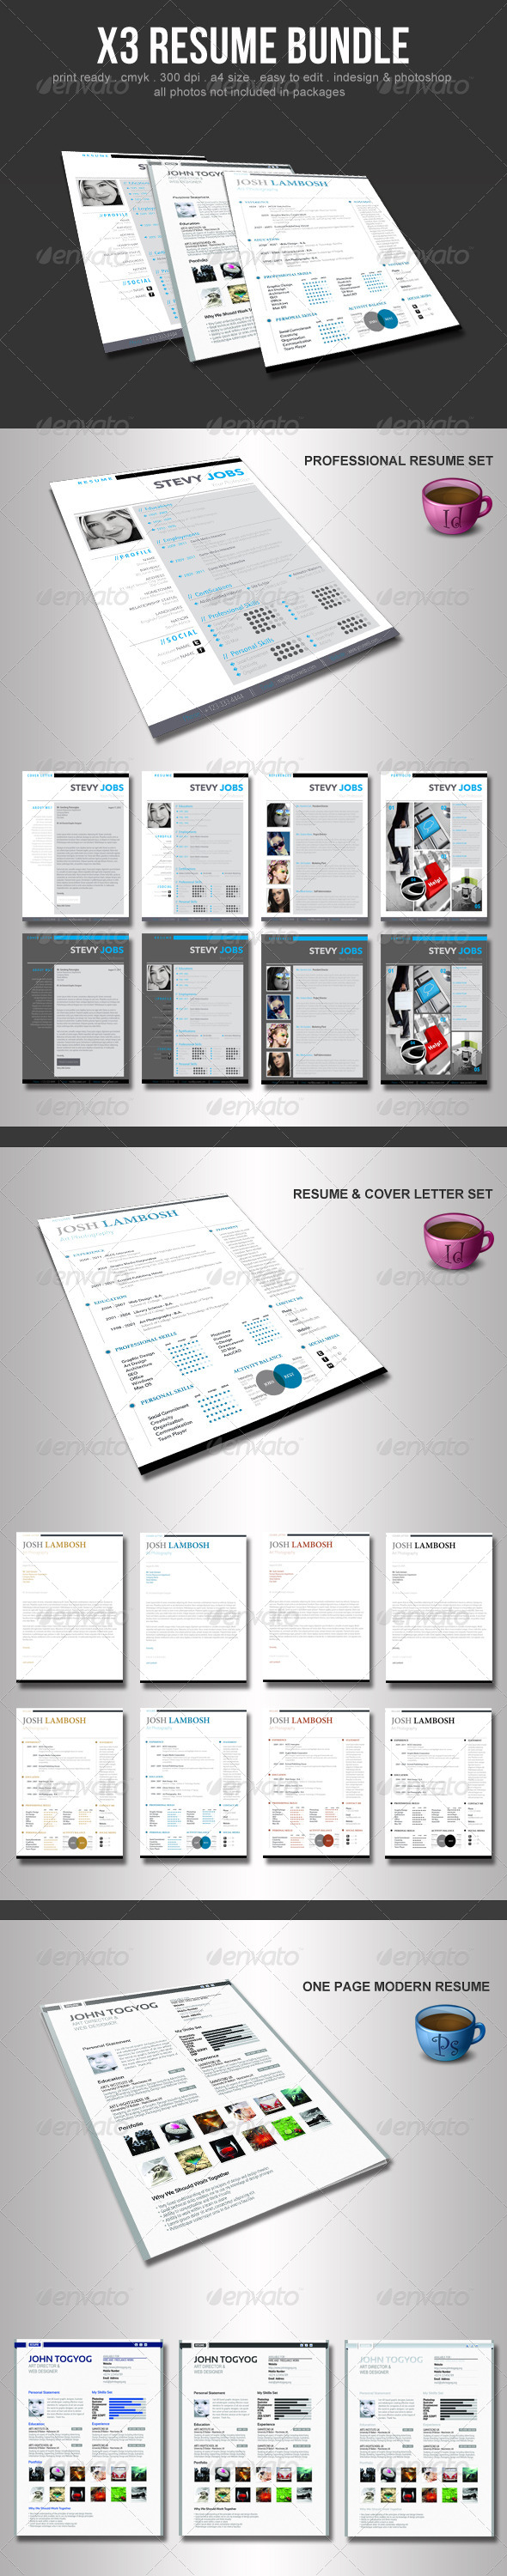 GraphicRiver X3 Resume Bundle 4642009